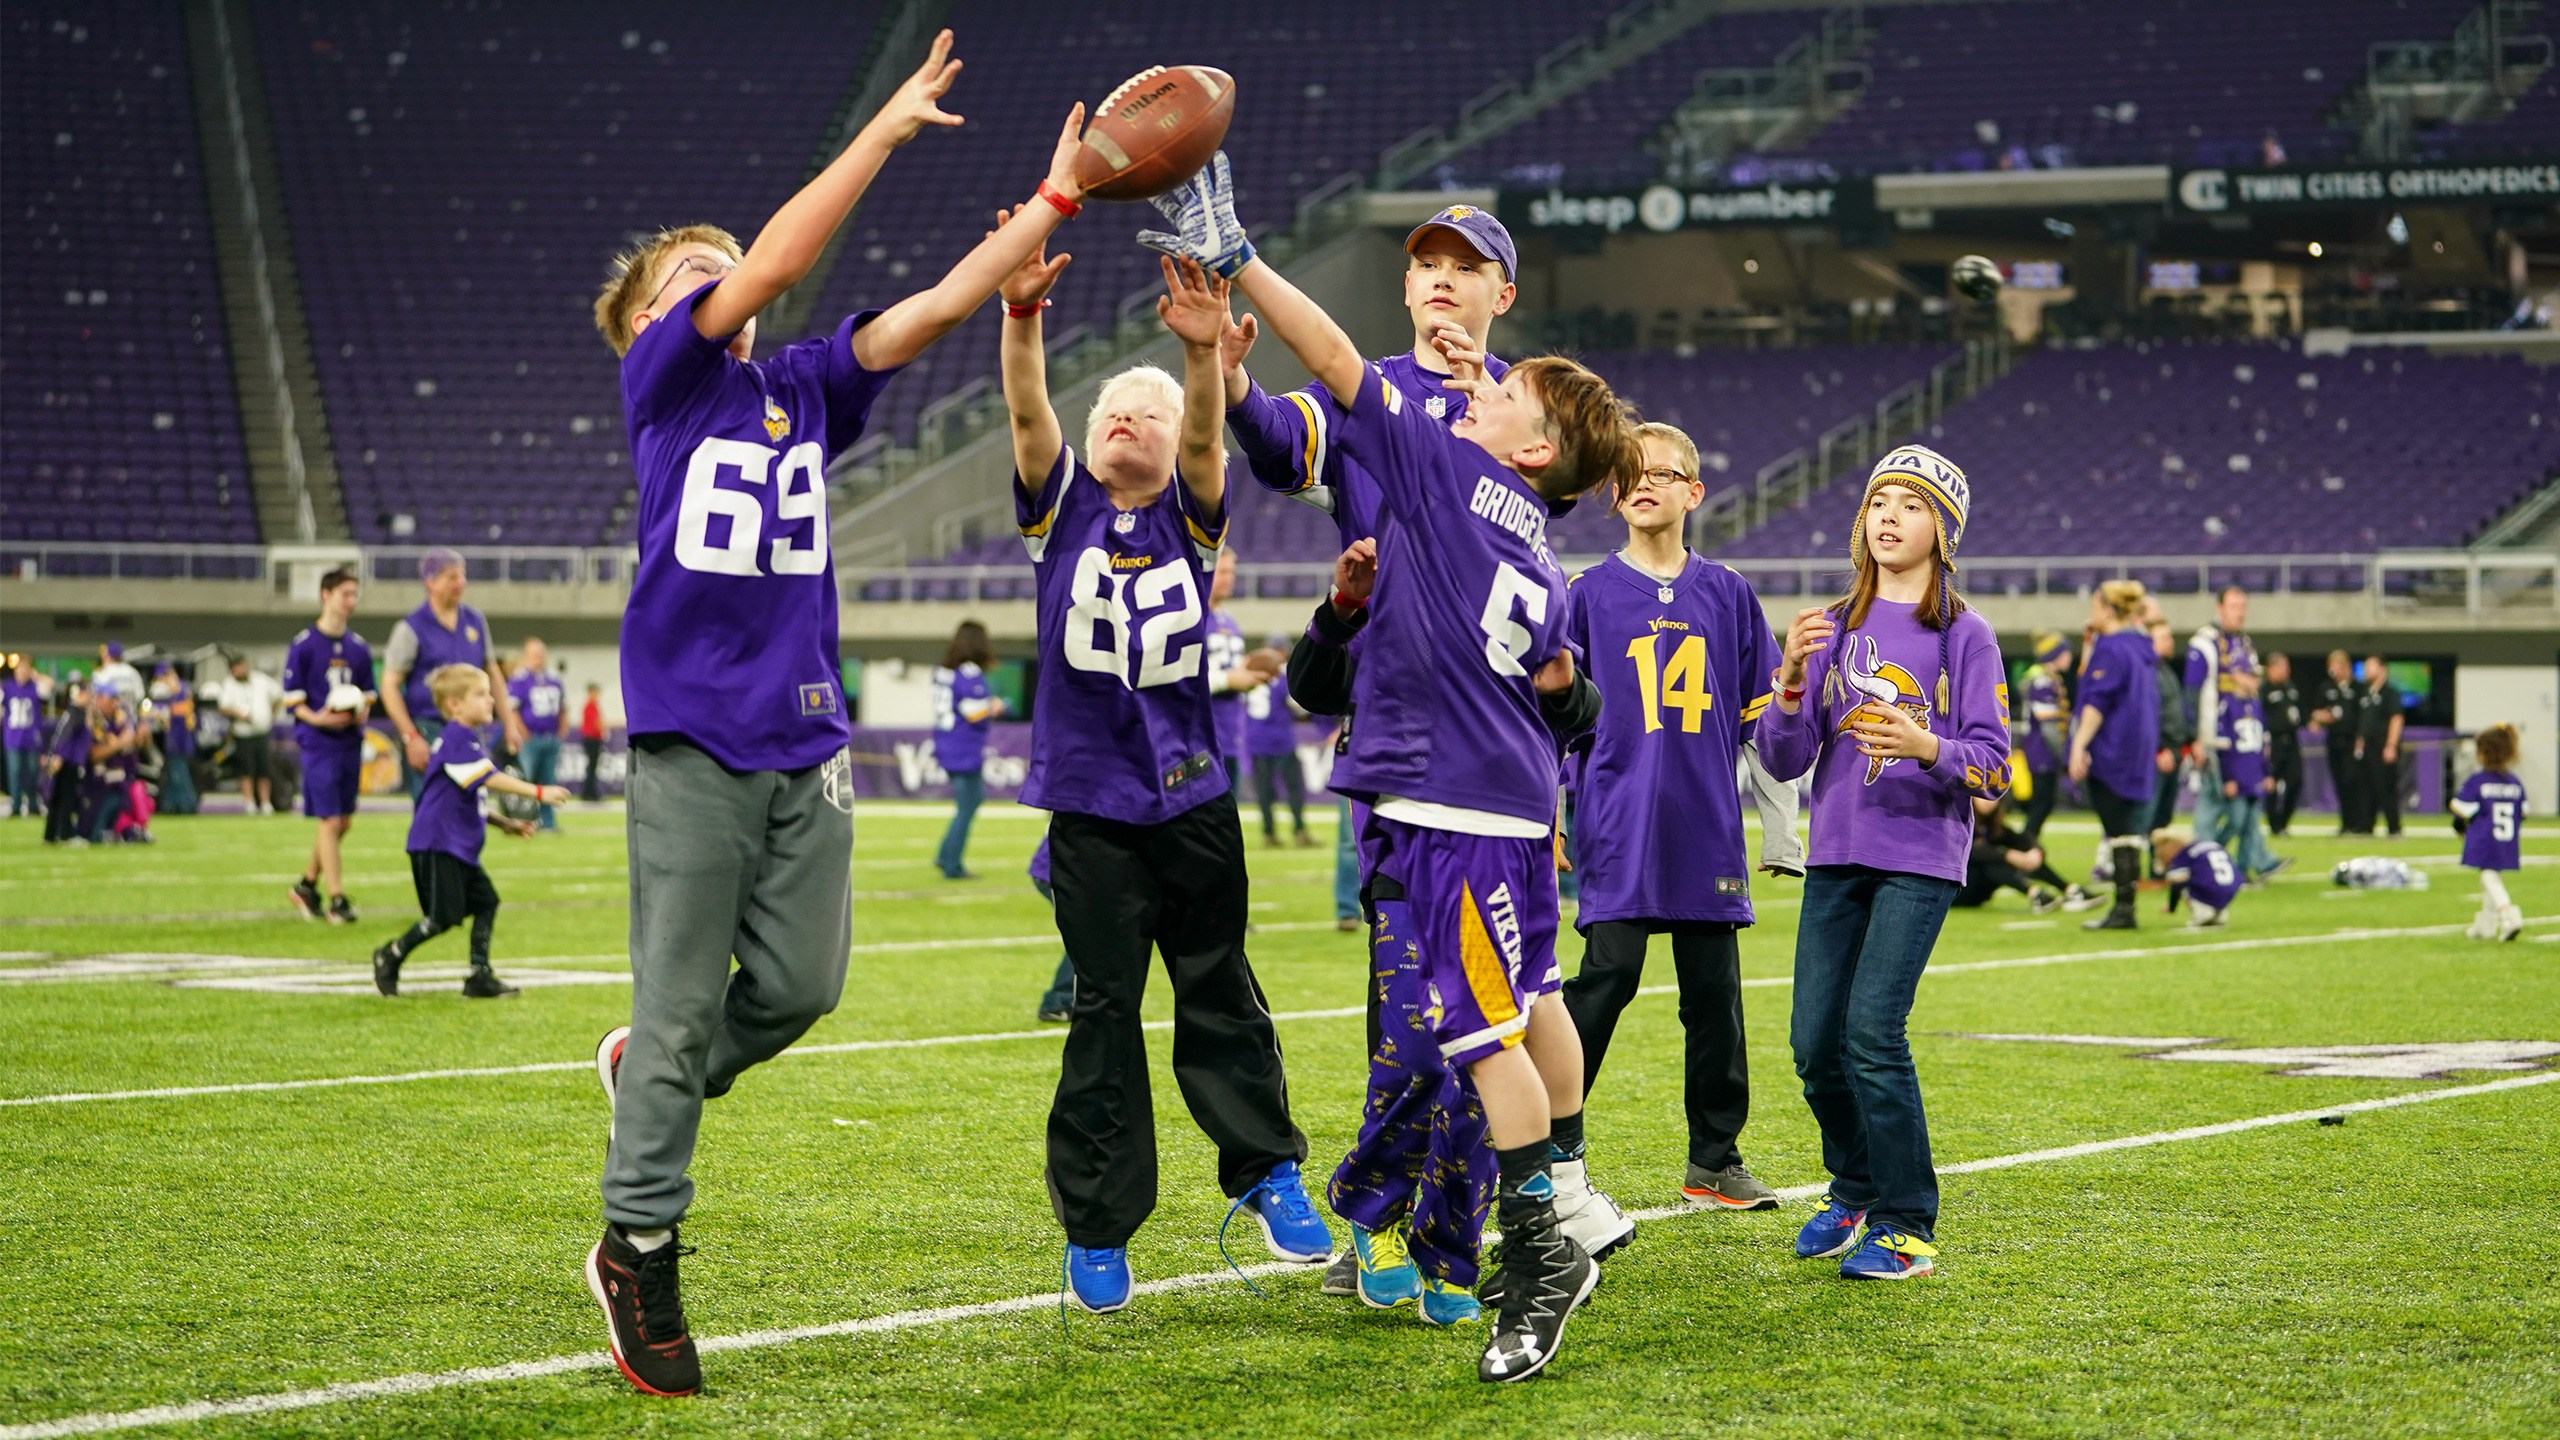 100% authentic e1f59 f76d5 Vikings Kids Club | Minnesota Vikings – vikings.com